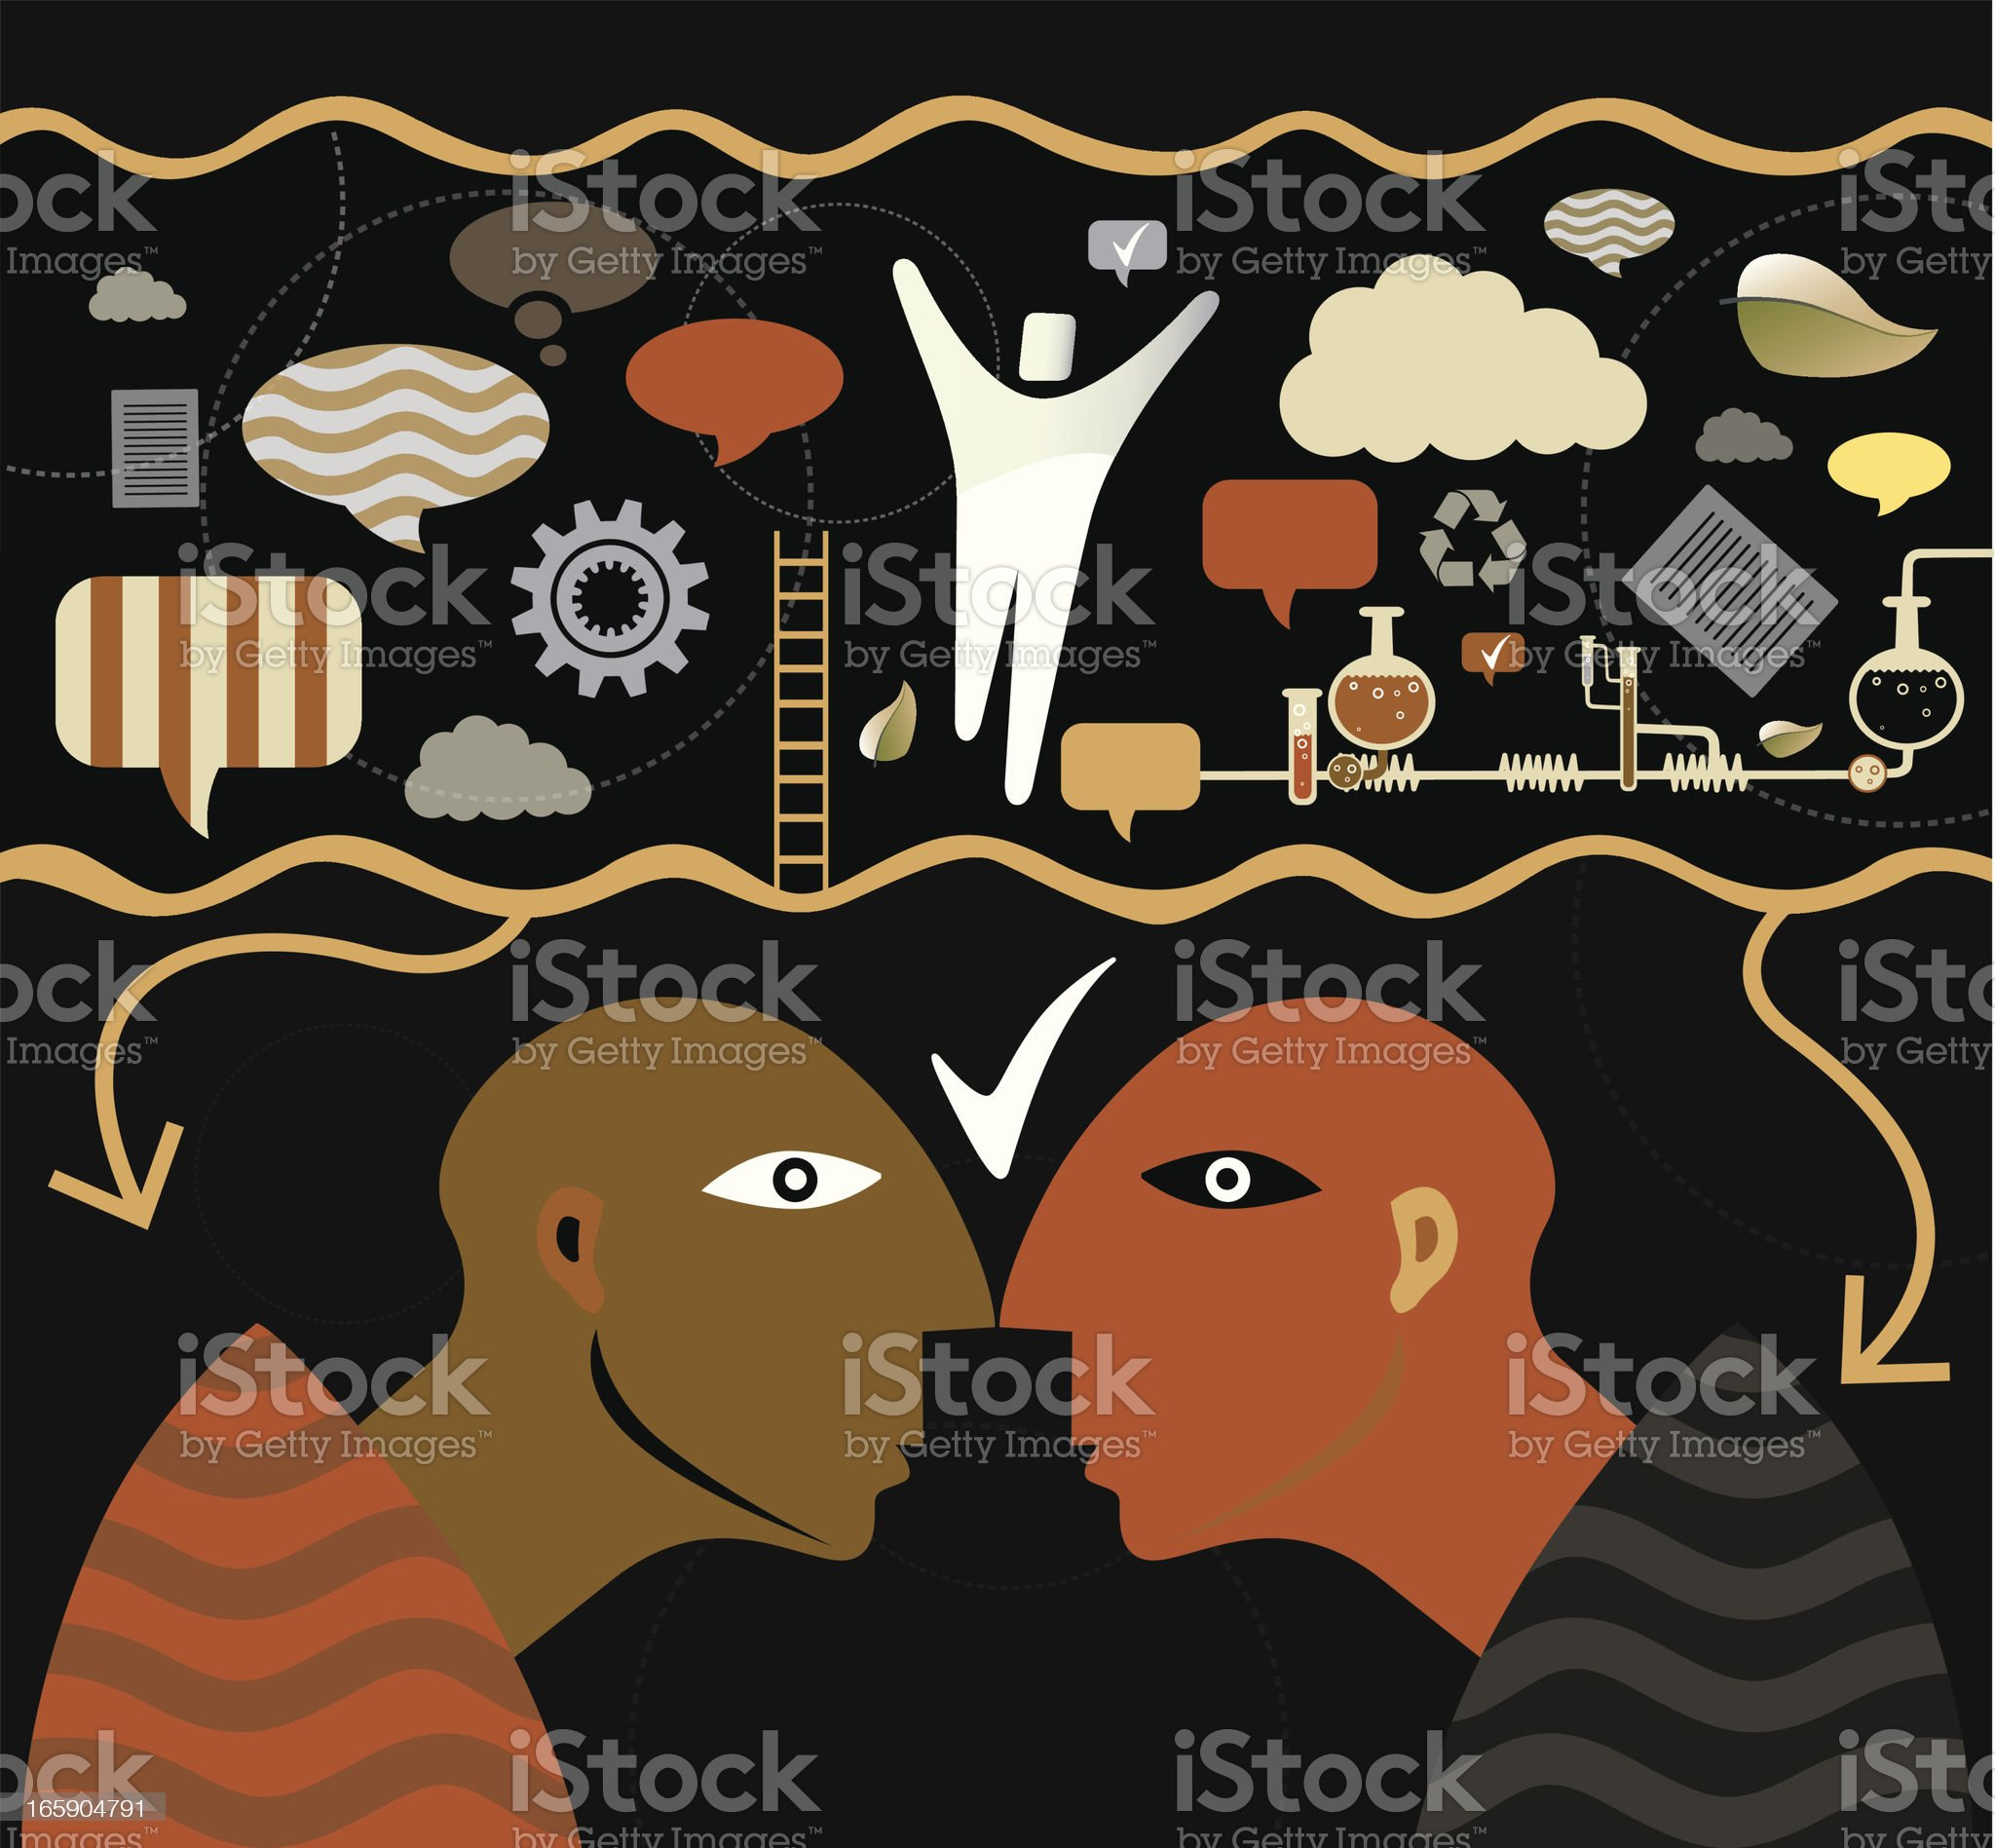 People and Positive Life royalty-free stock vector art